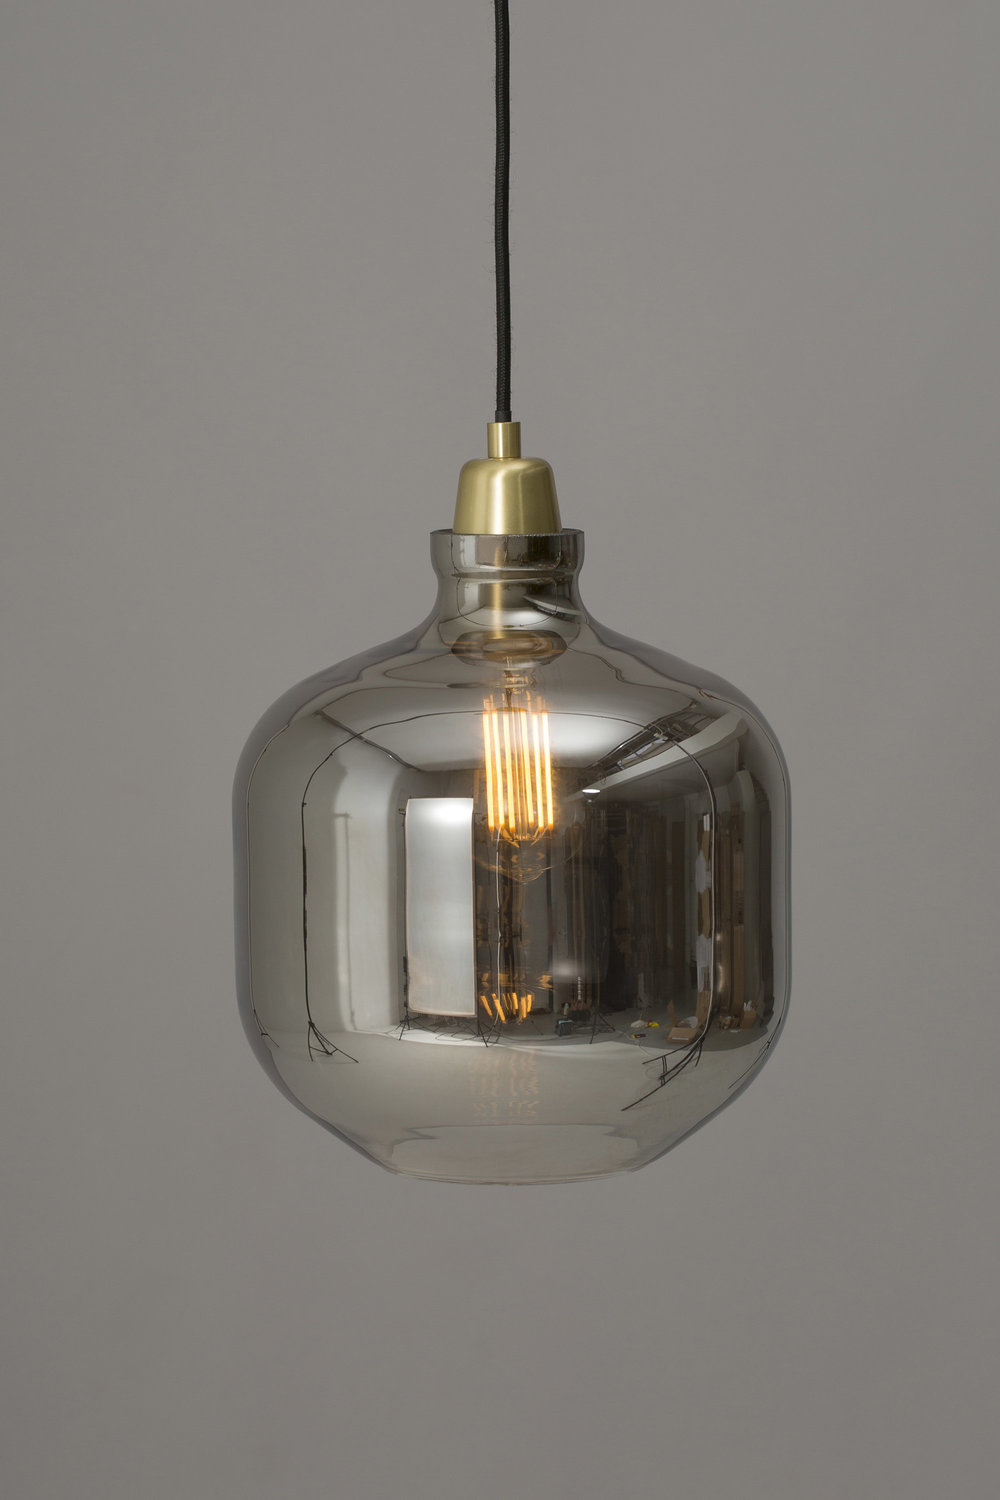 Adum pendant  light by BHS, £40